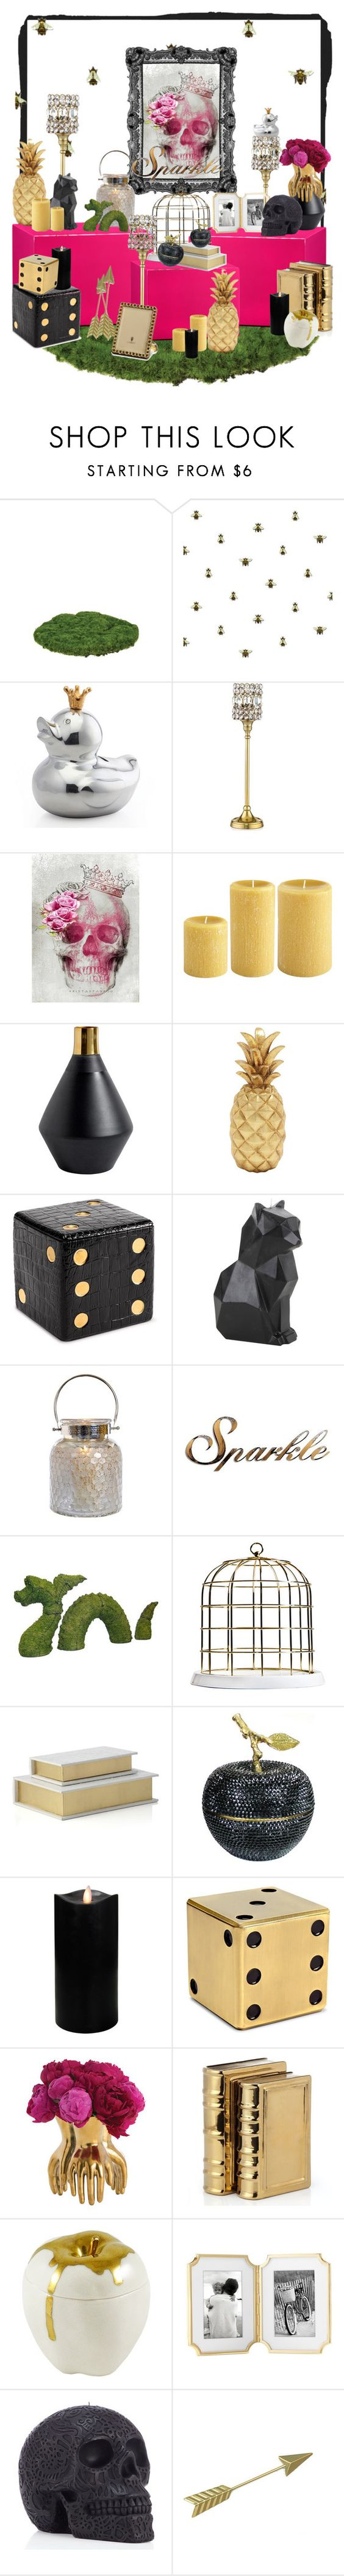 """""""Gold, Pink, Black, white"""" by britt-catlynne-weatherall on Polyvore featuring interior, interiors, interior design, home, home decor, interior decorating, Timorous Beasties, Lunares, Leeber Limited and CB2"""